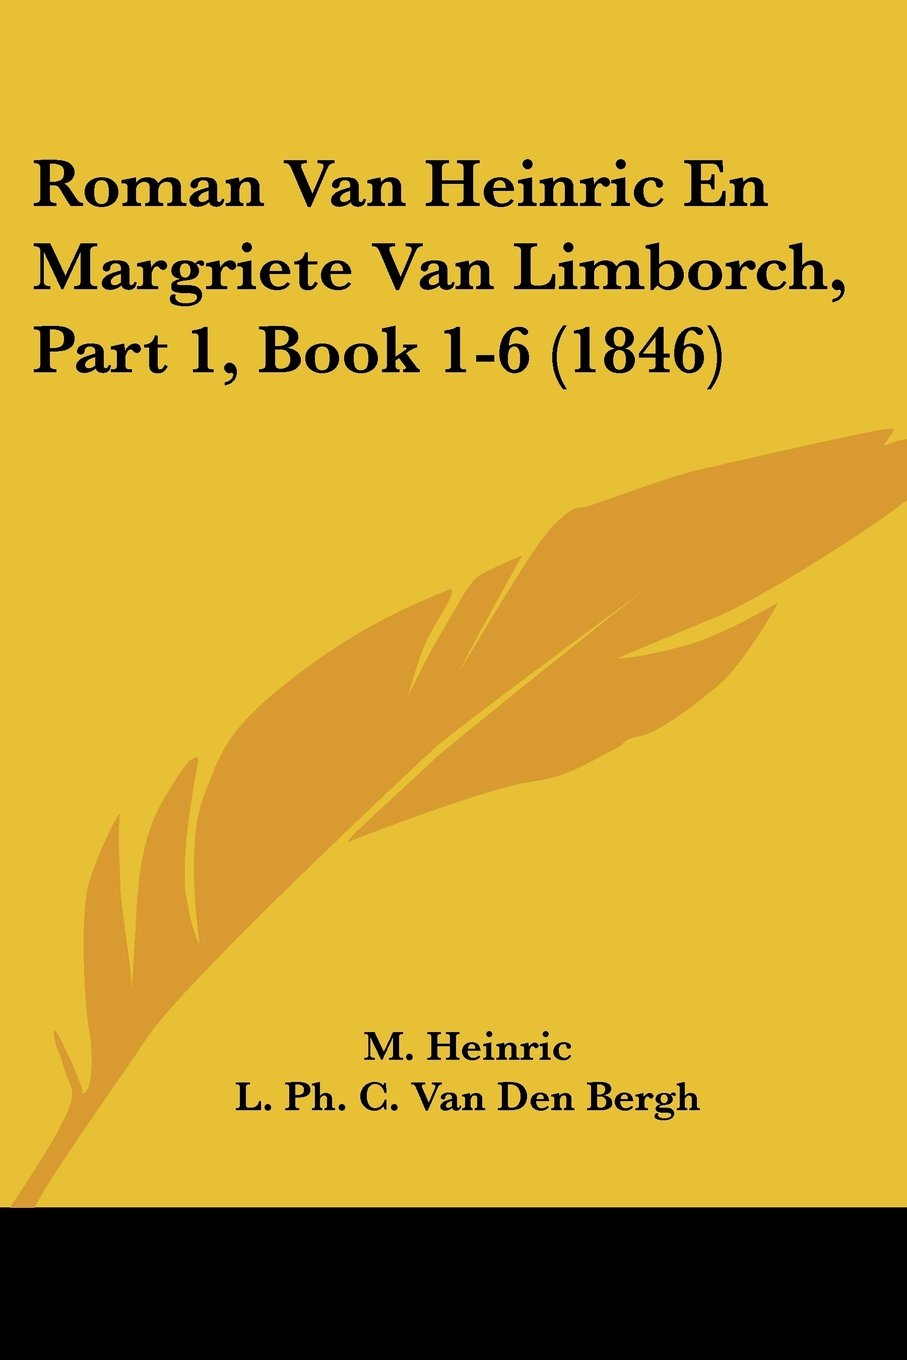 Roman Van Heinric En Margriete Van Limborch, Part 1, Book 1-6 (1846) (Chinese Edition) pdf